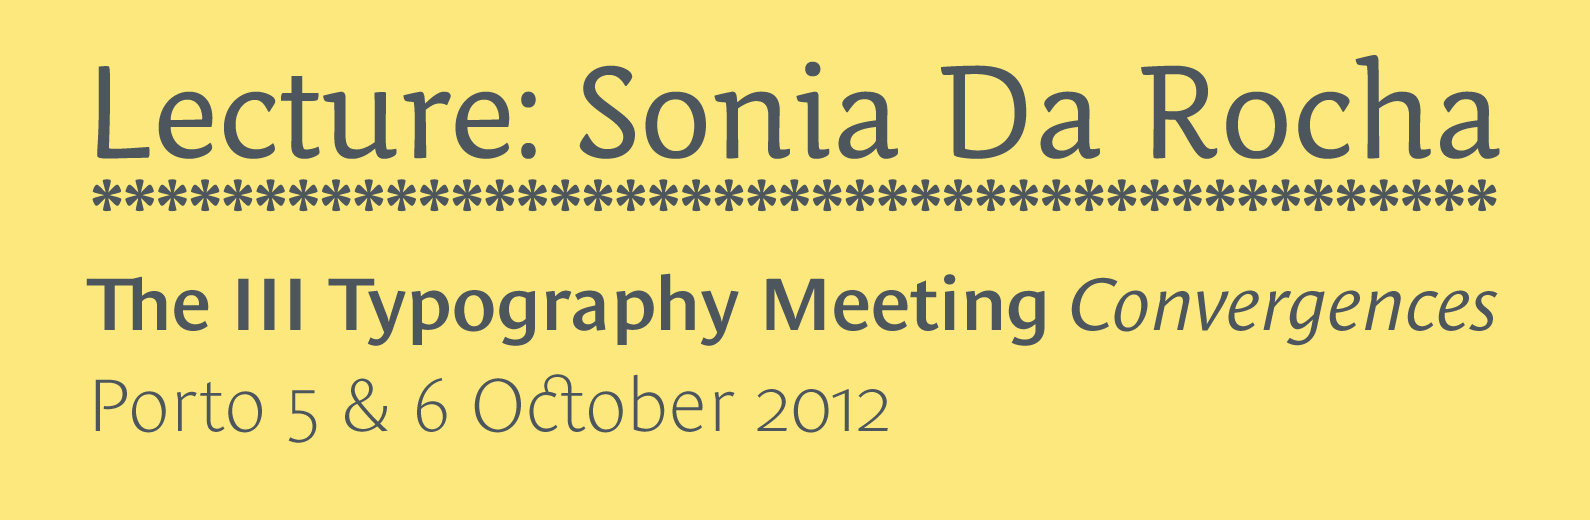 Sonia Da Rocha - III Typography Meeting